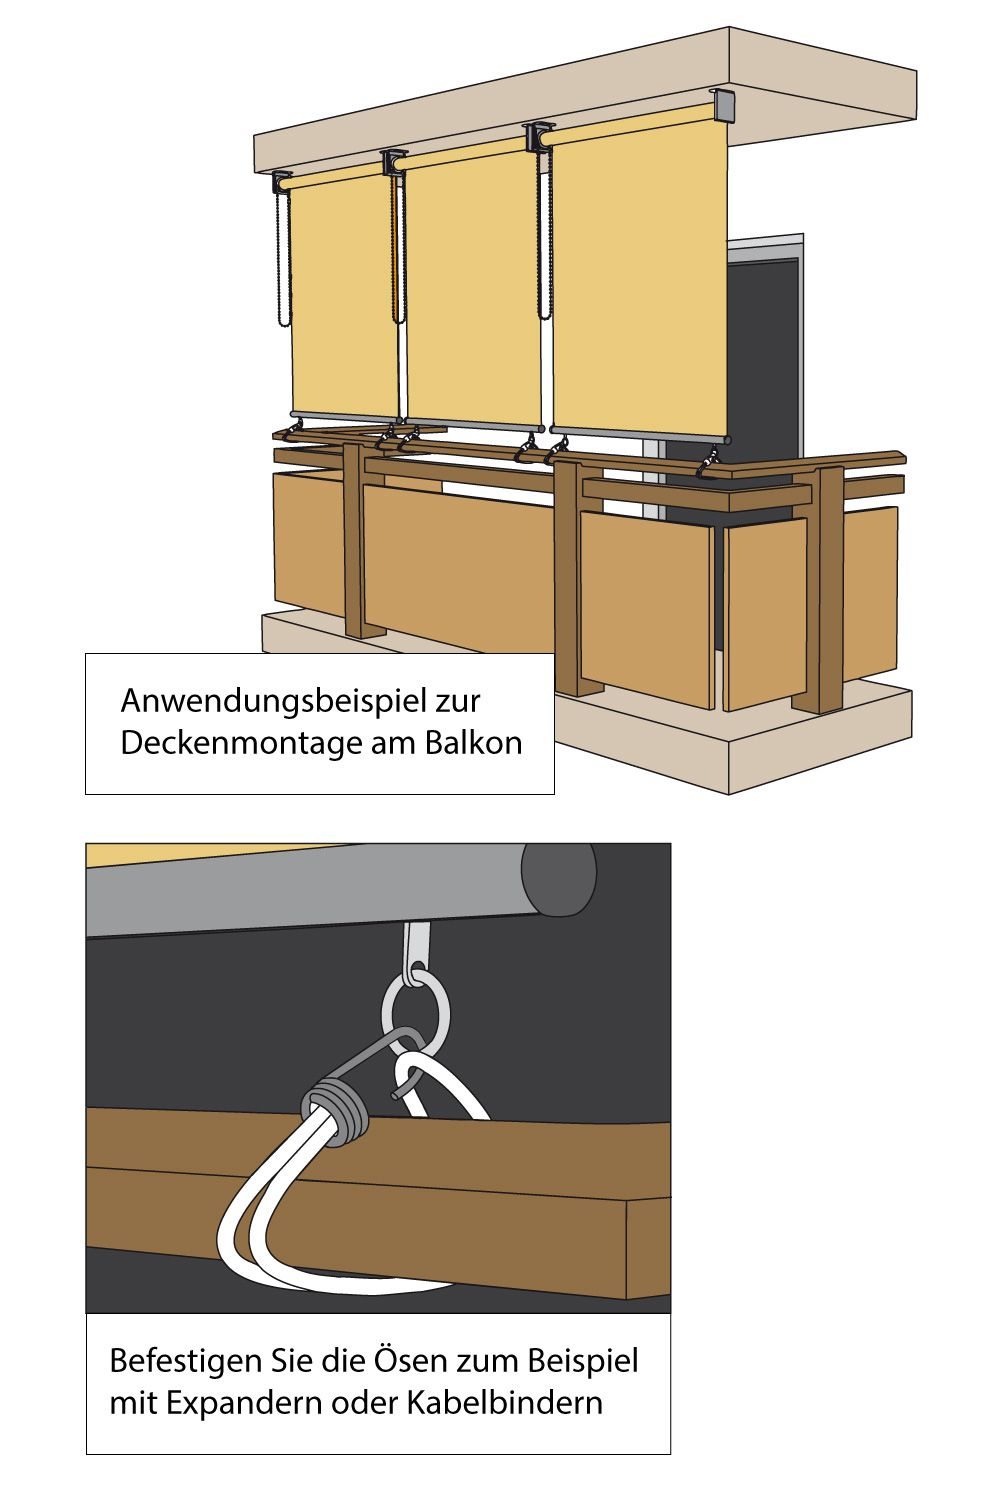 au enrollos senkrechtmarkisen f r balkon jarolift balkon in 2019 pinterest balkon. Black Bedroom Furniture Sets. Home Design Ideas